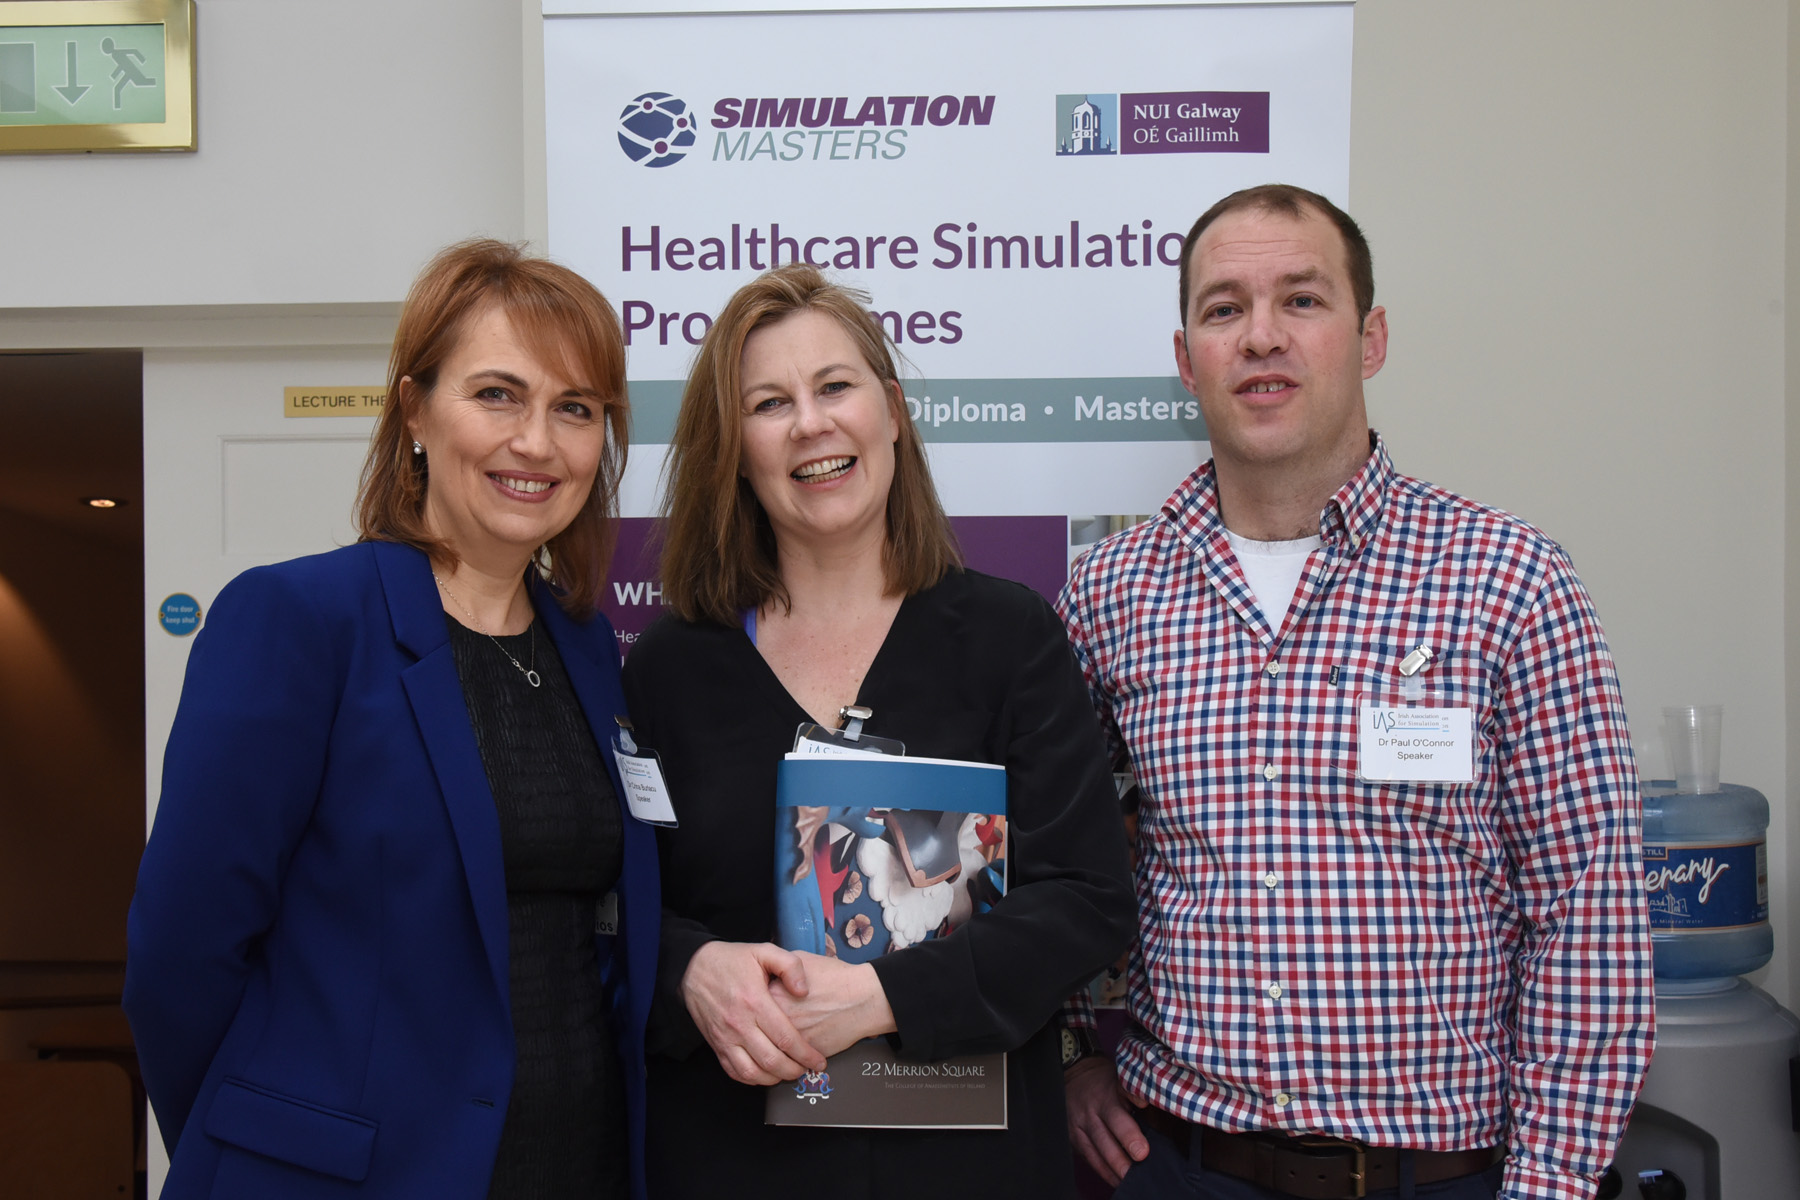 Irish Association for Simulation Symposium Day